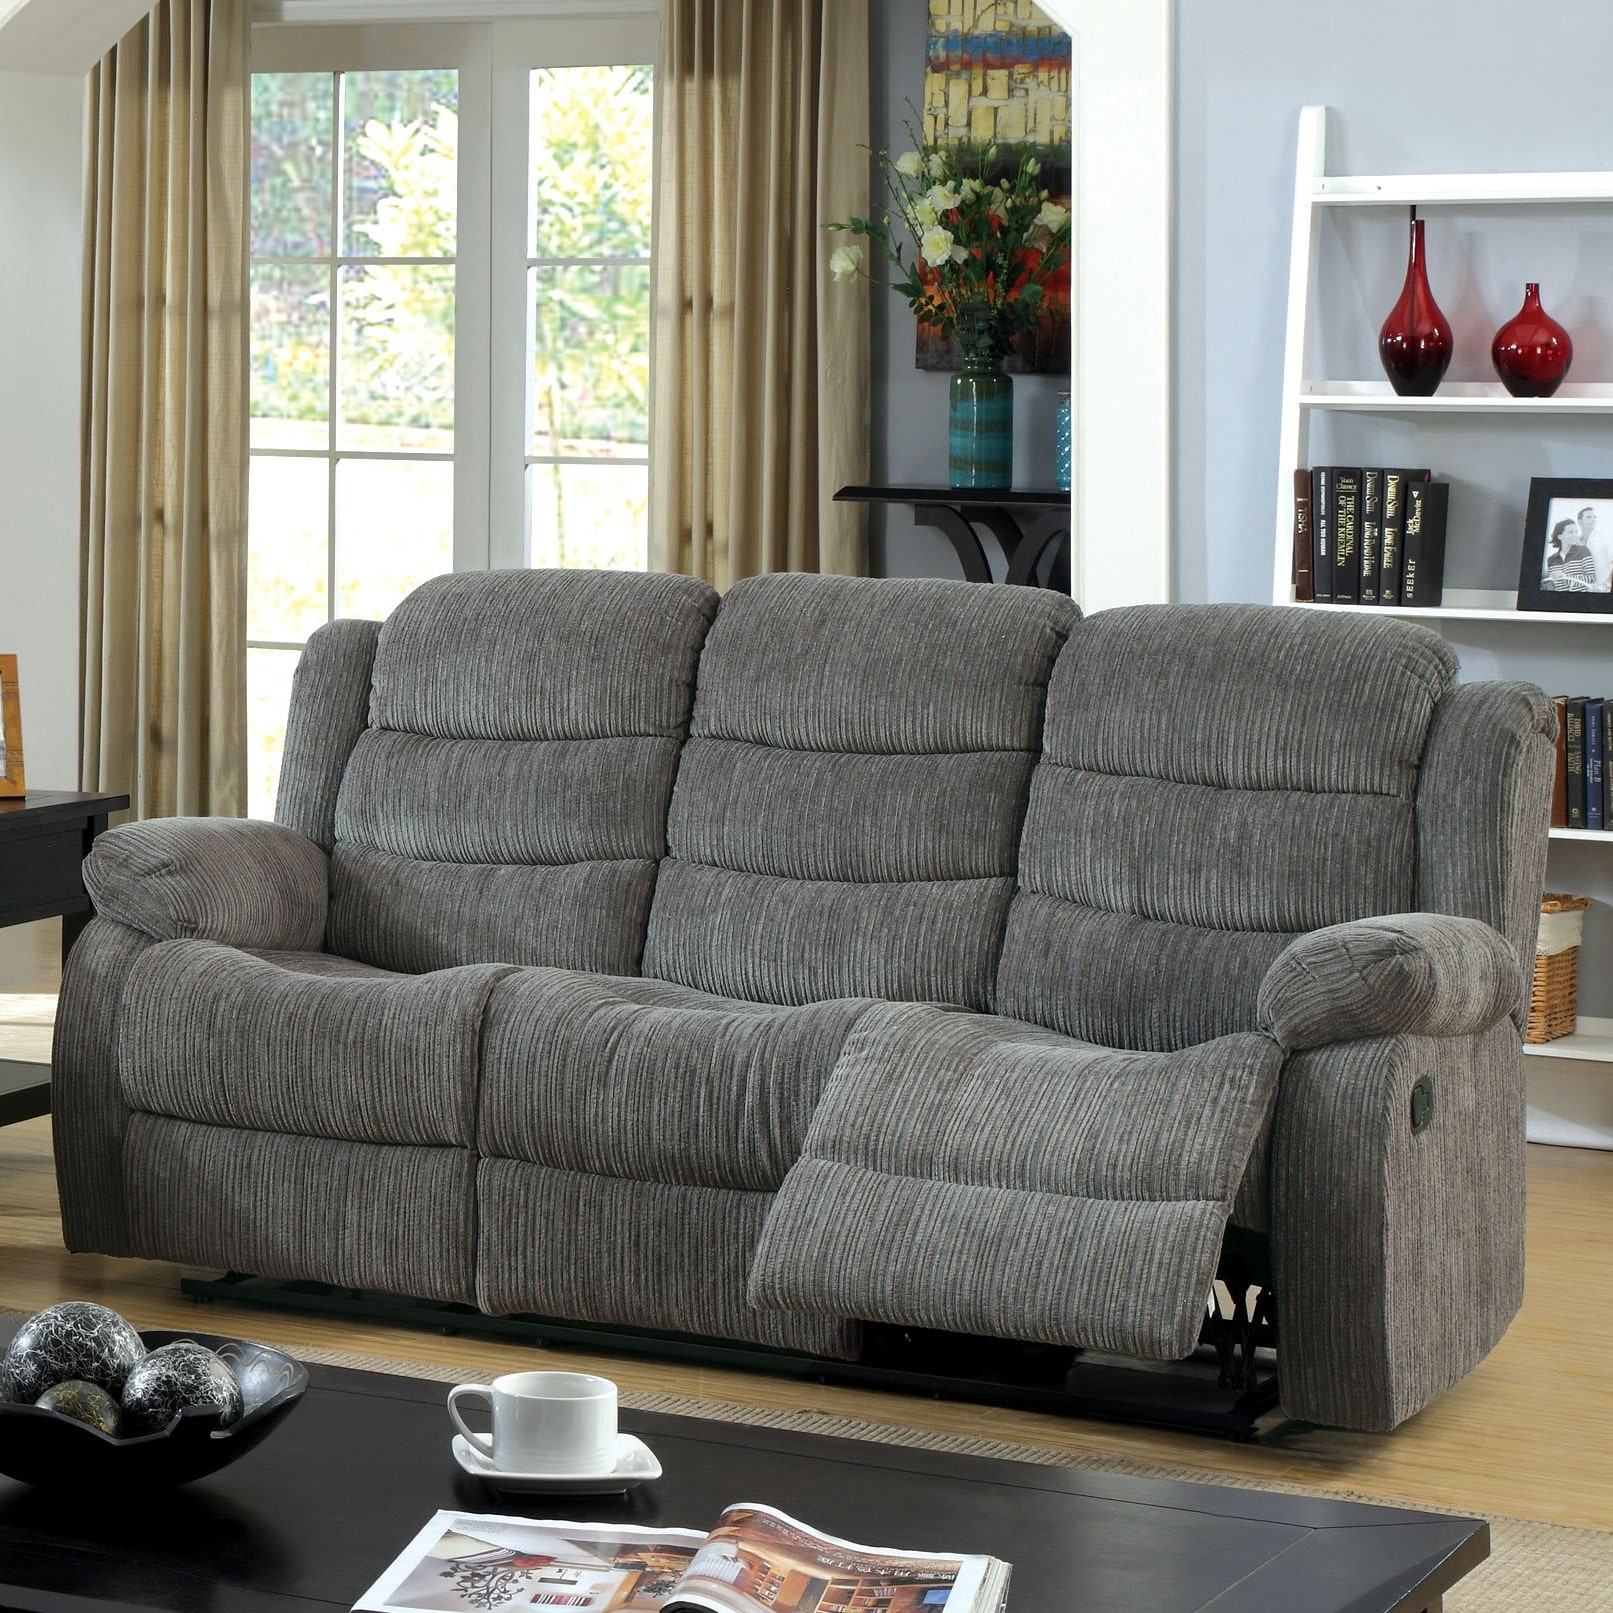 10 Top Greensboro Nc Sectional Sofas